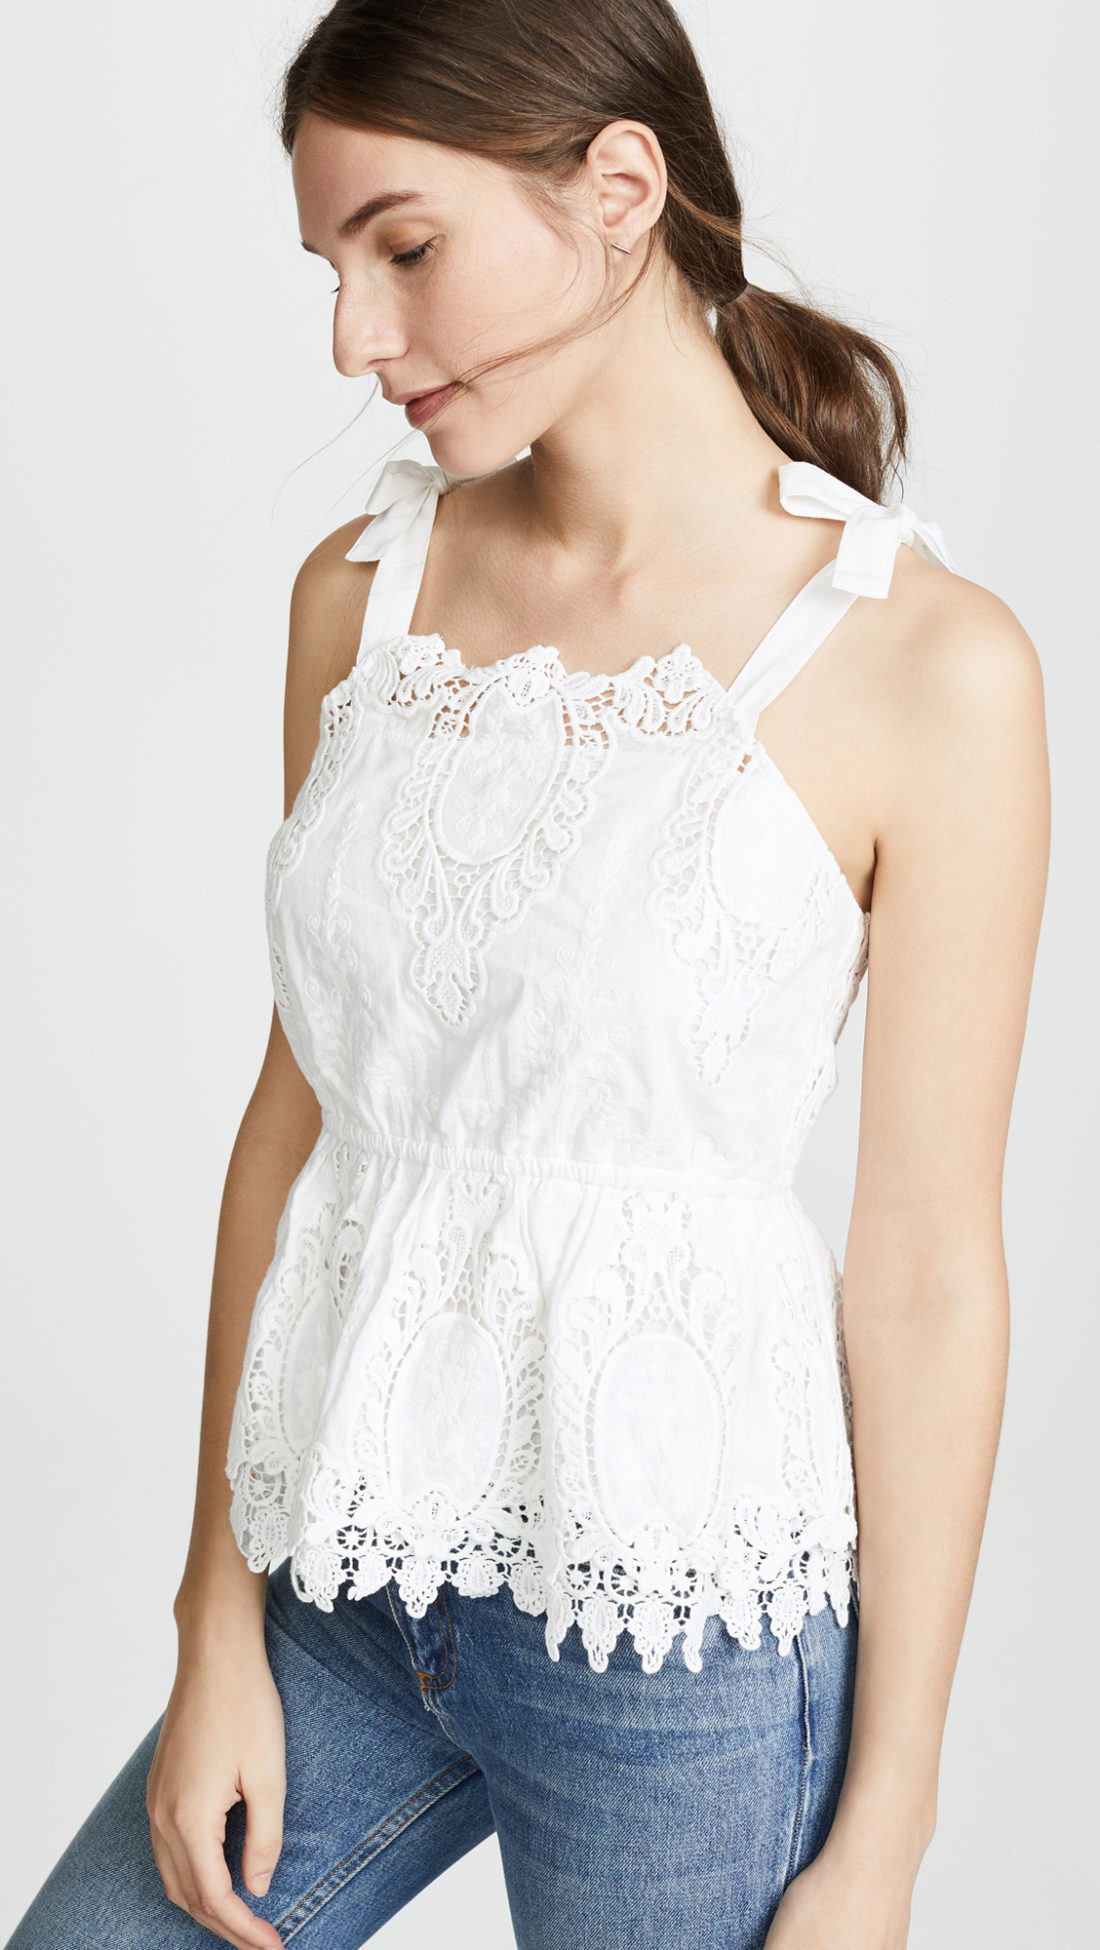 BB Dakota Odessa Eyelet Ruffle Top - Shopbop sale recommendations by popular North Carolina fashion blogger Glitter, Inc.